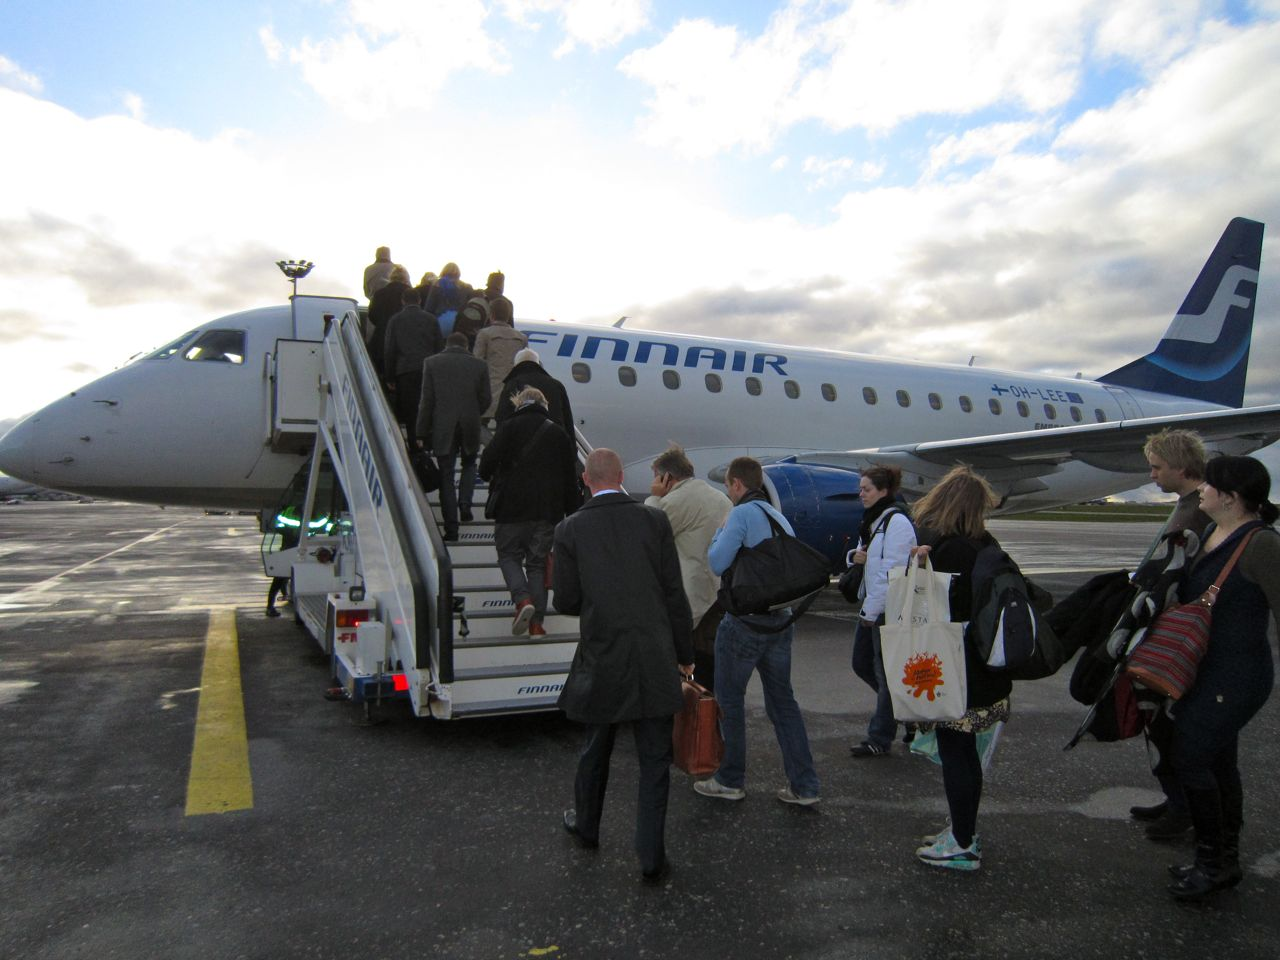 People boarding Finnair